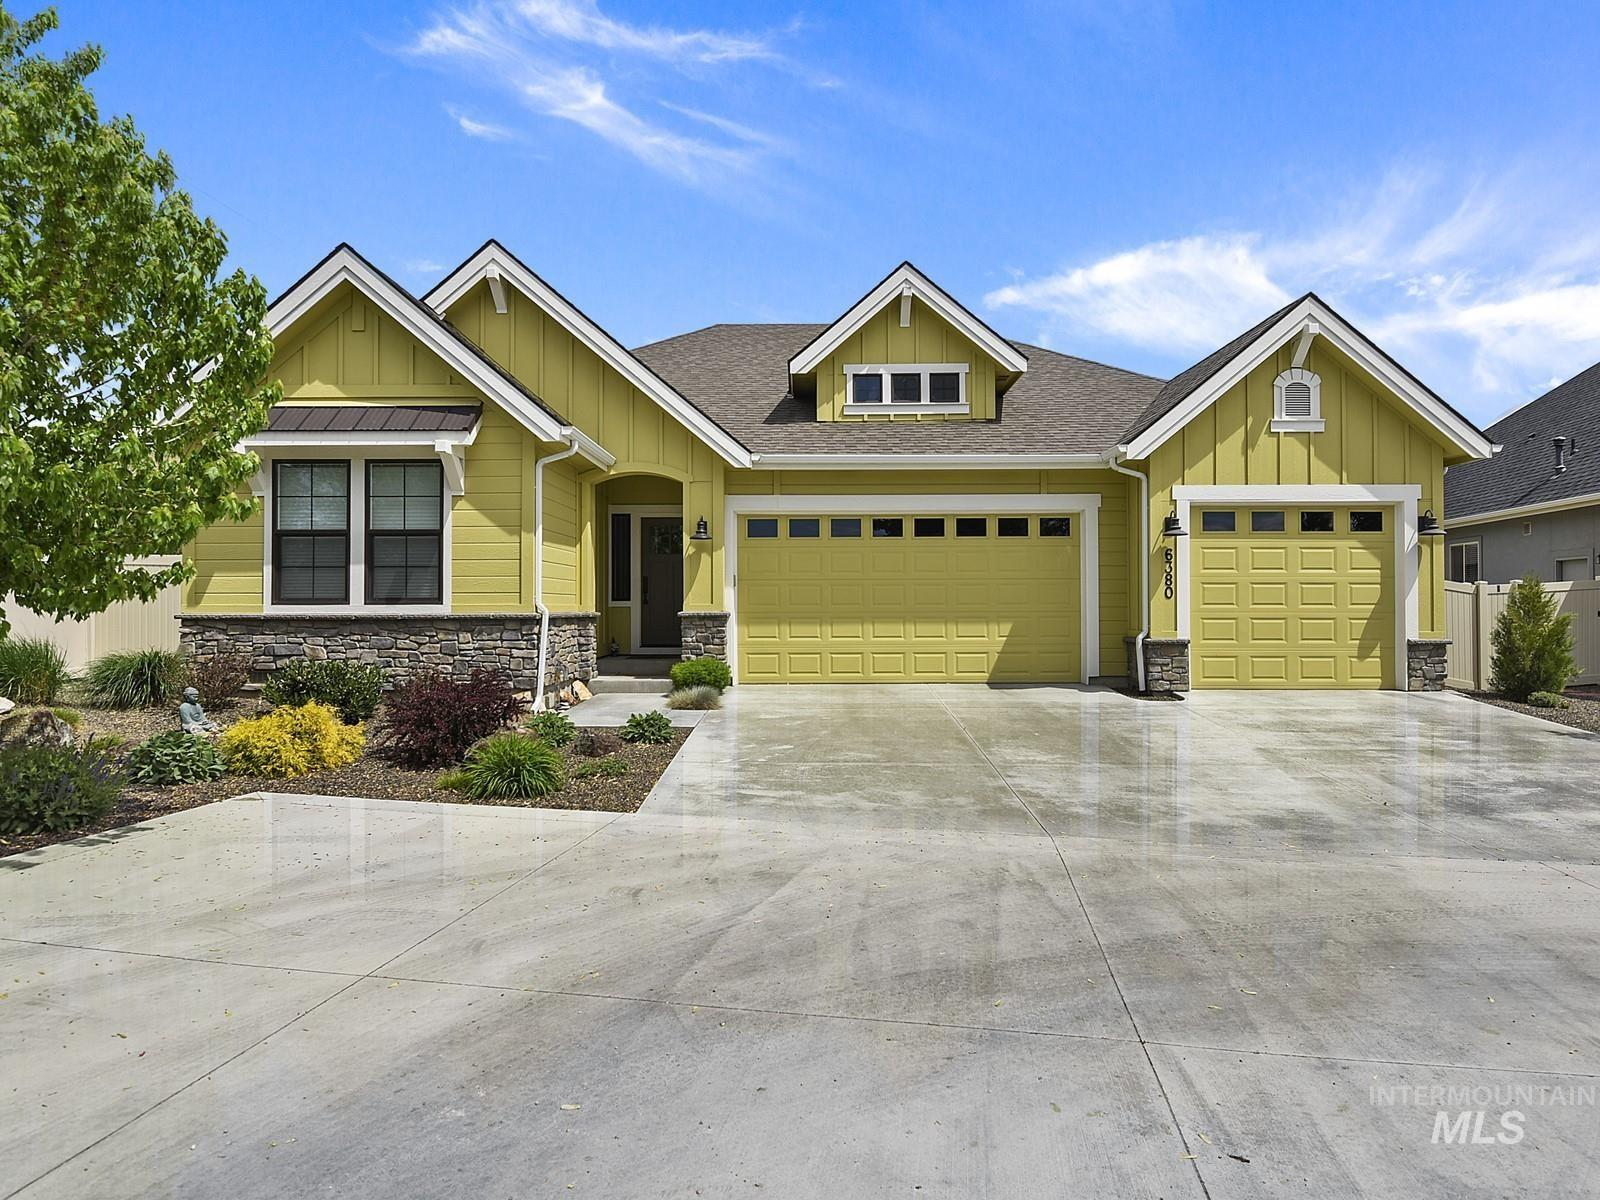 6380 W Township Dr Property Photo - Boise, ID real estate listing